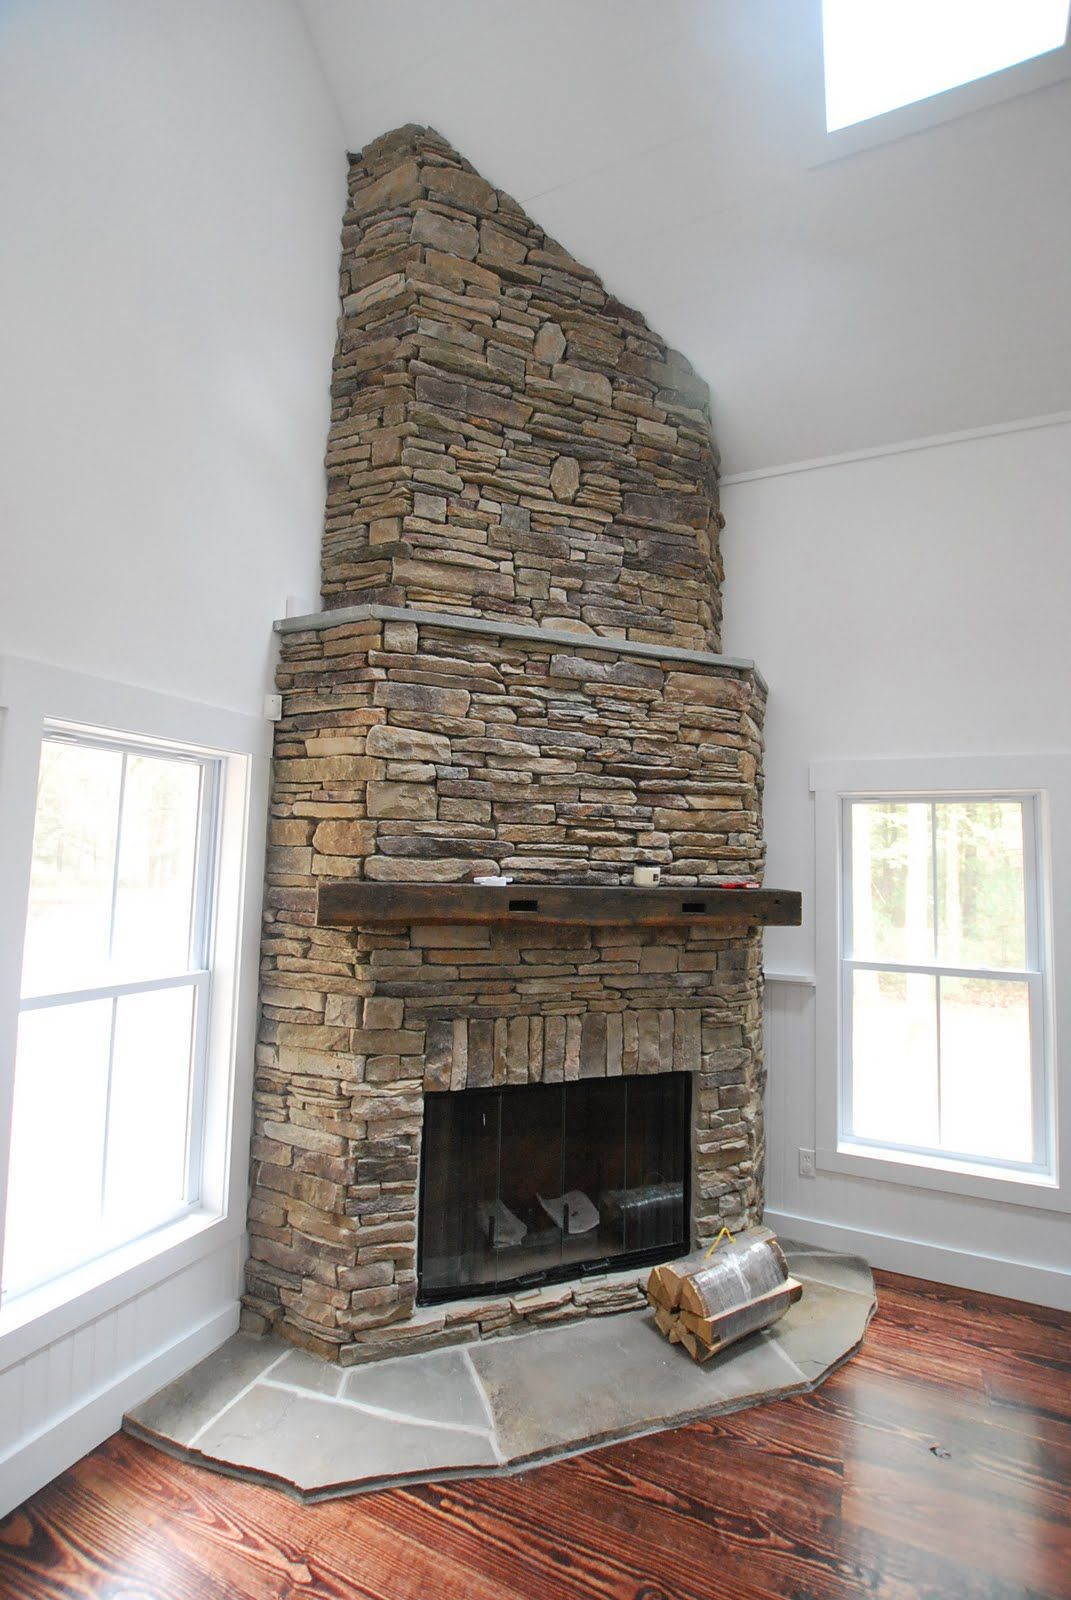 Pin By Deana Allessio Makdissi On Fireplace Corner Stone Fireplace Fireplace Design Corner Fireplace